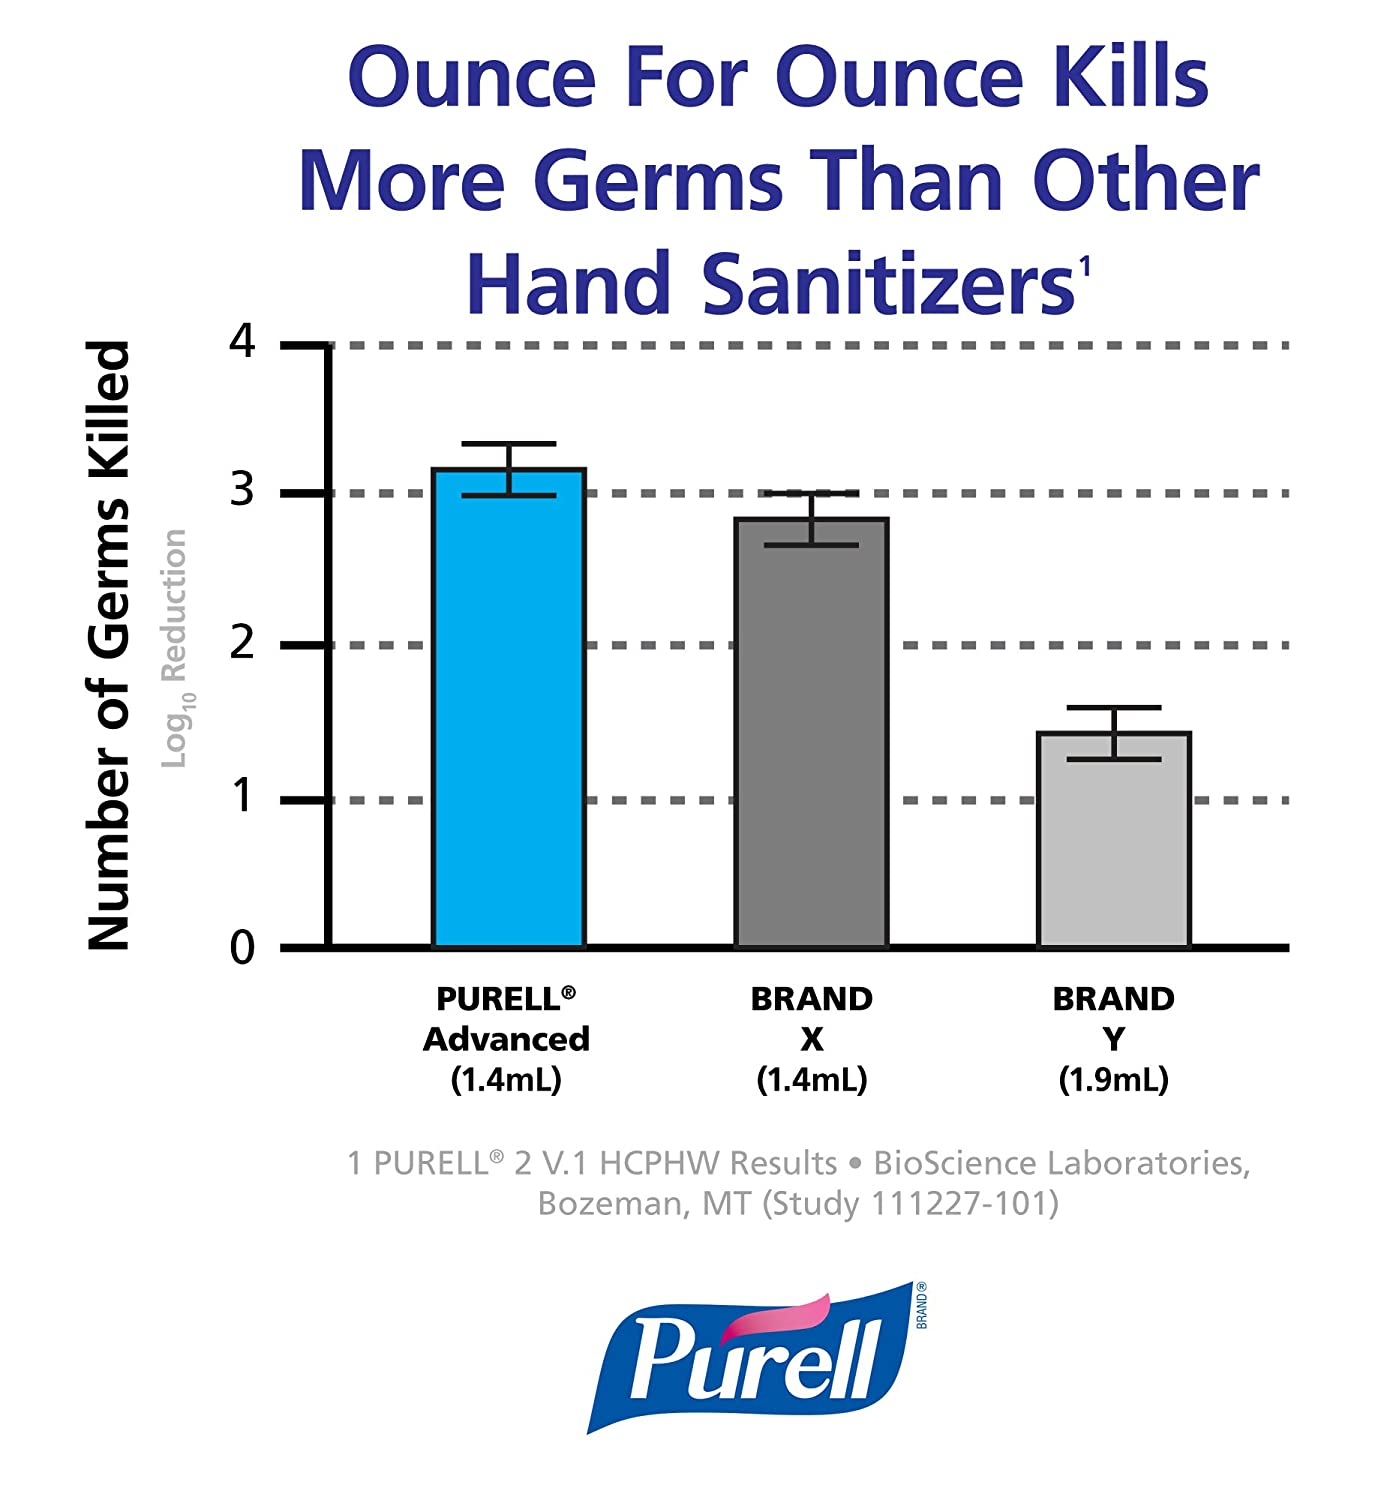 Amazon.com: PURELL 5392-D1 TFX Touch Free Dispenser & Refill, Hand Sanitizer Dispenser Kit with 1200mL Refill: Industrial & Scientific